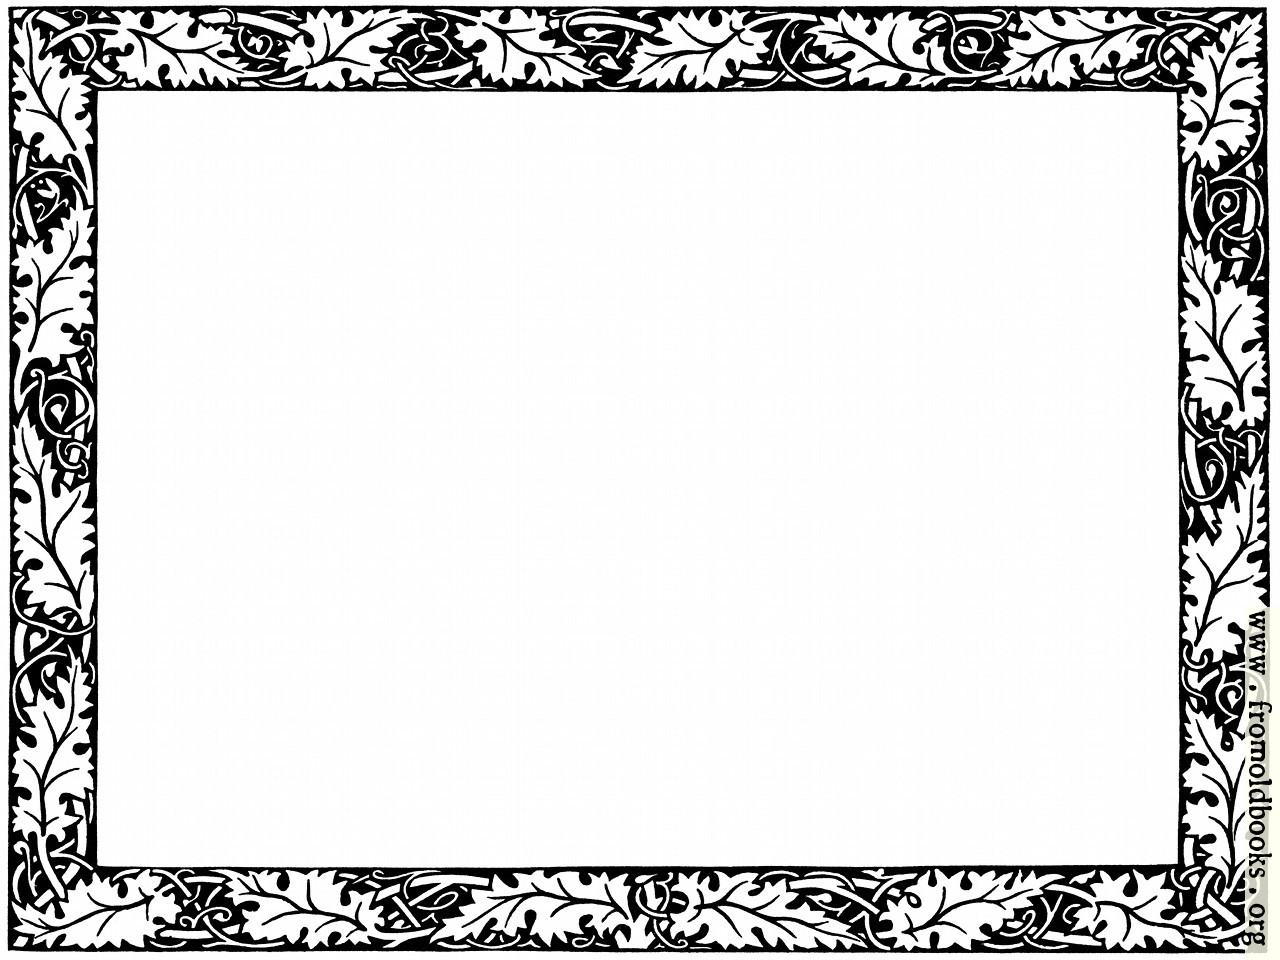 [Picture: Leafy Border from page 501]